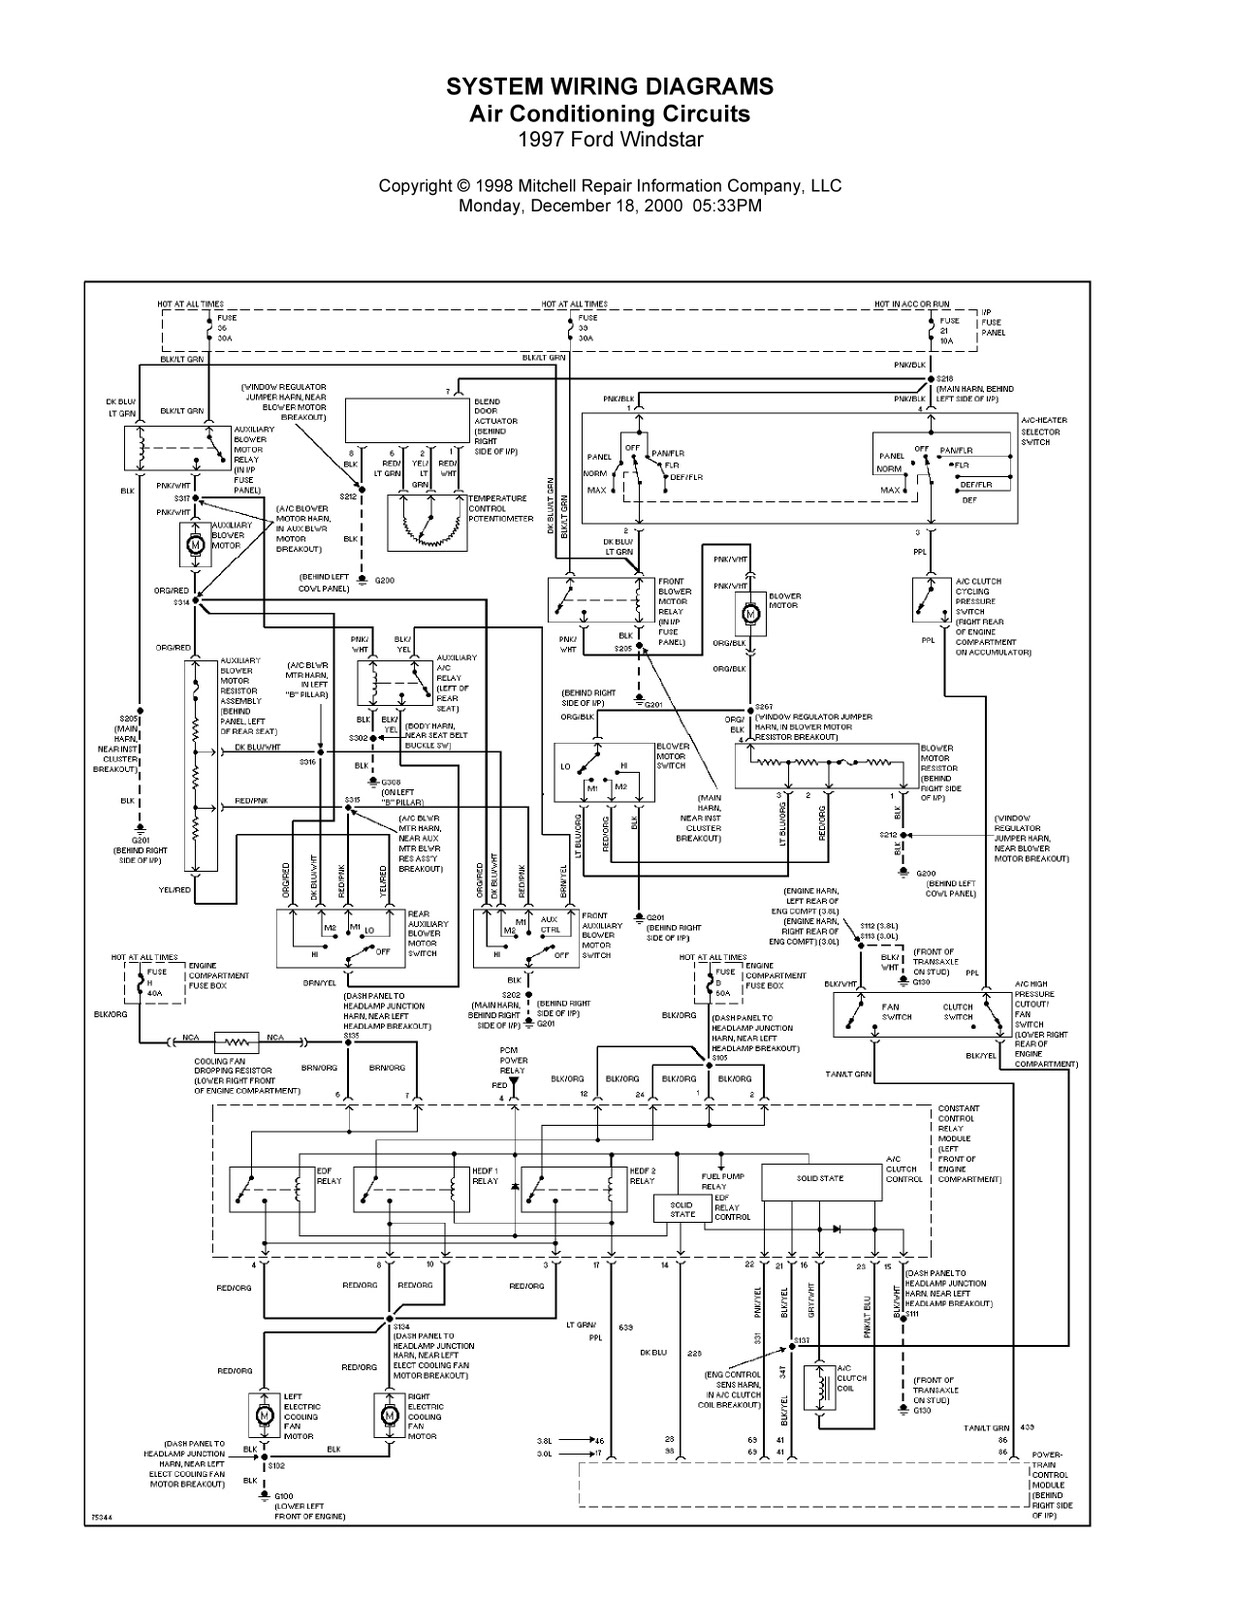 02 Windstar Wiring Diagram Pdf Not Lossing Trane Economizer Diagrams Library Rh 7 Skriptoase De 2001 Ford